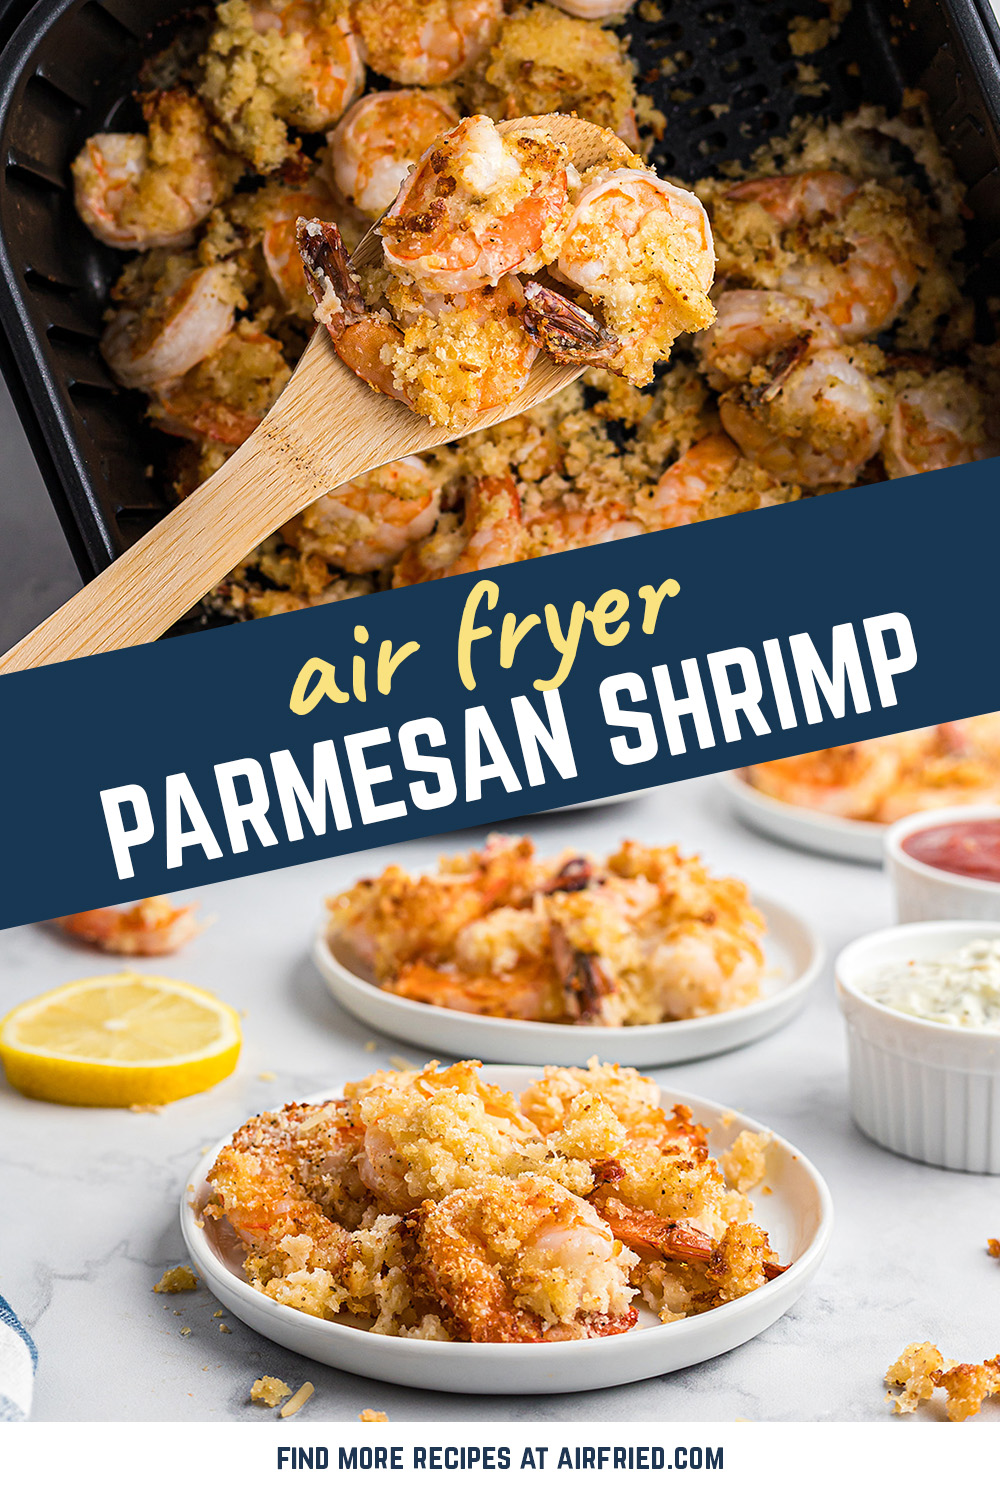 These parmesan shrimp offer a crispy breading with a mellow Italian flavor.  Serve them with cocktail sauce for a great snack or dessert! #airfryer #seafood #shrimprecipes